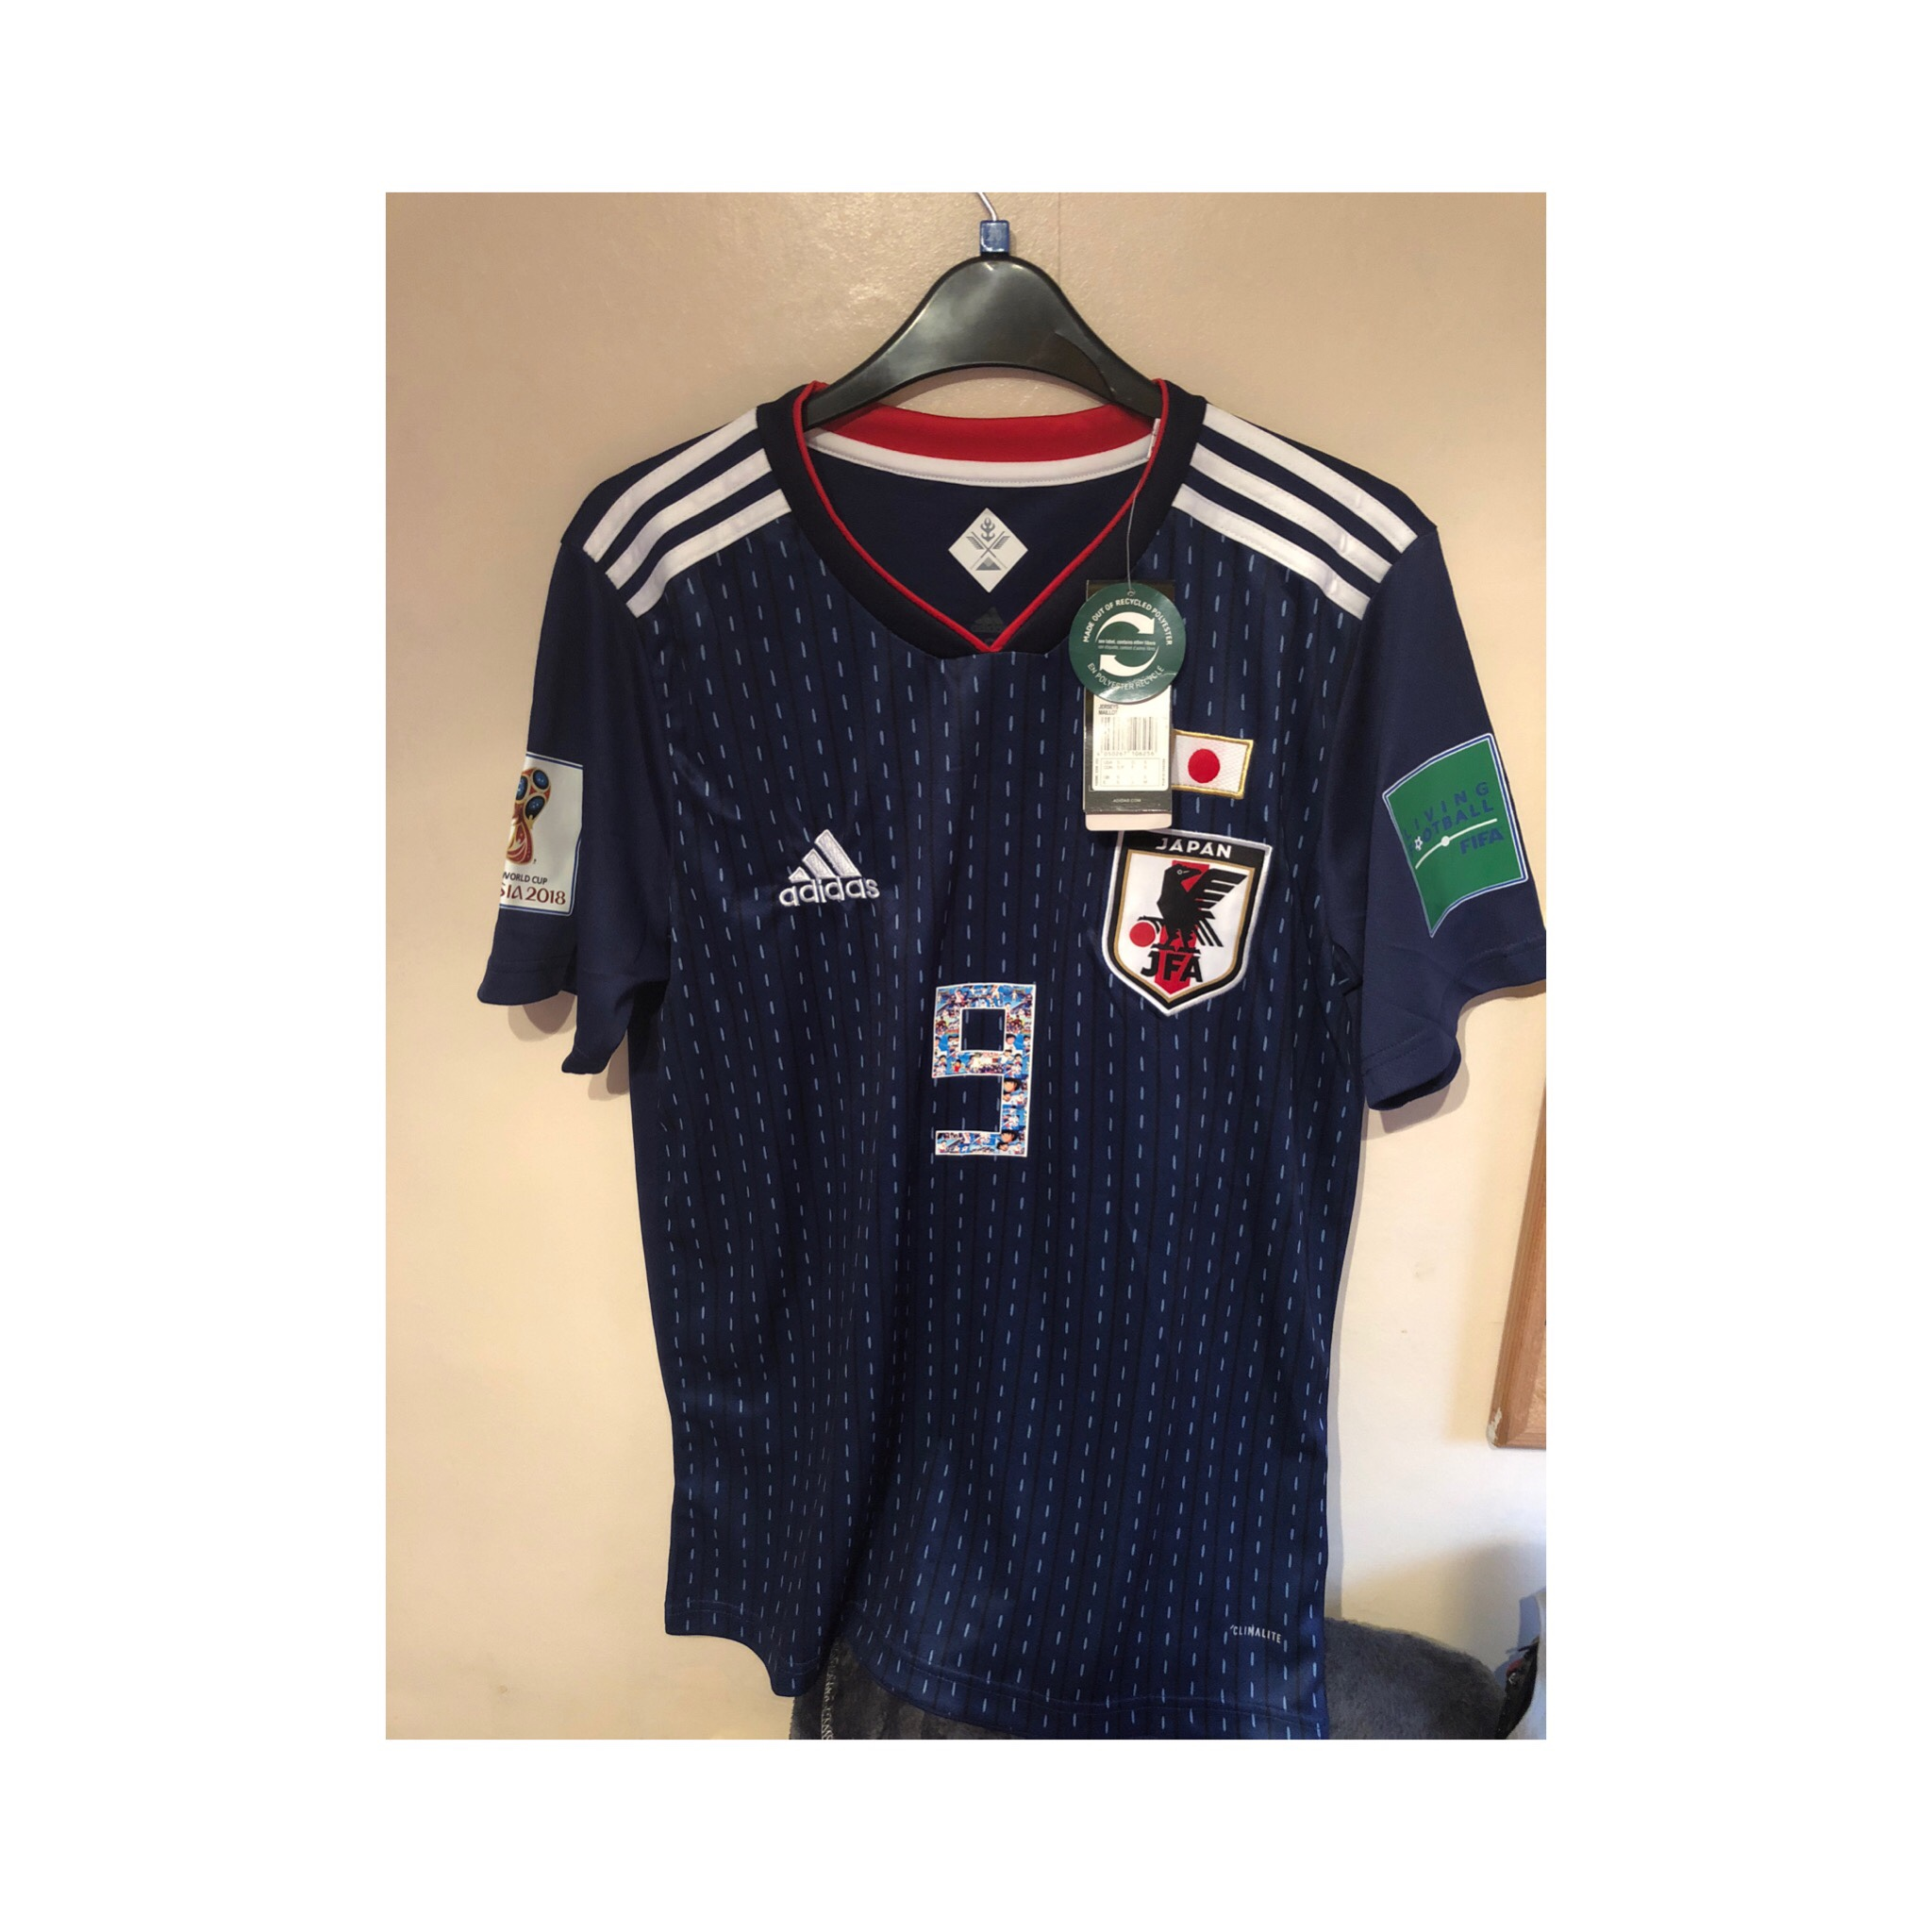 differently 8c4c2 53e2b Japan home kit 2018 international World Cup special... - Depop